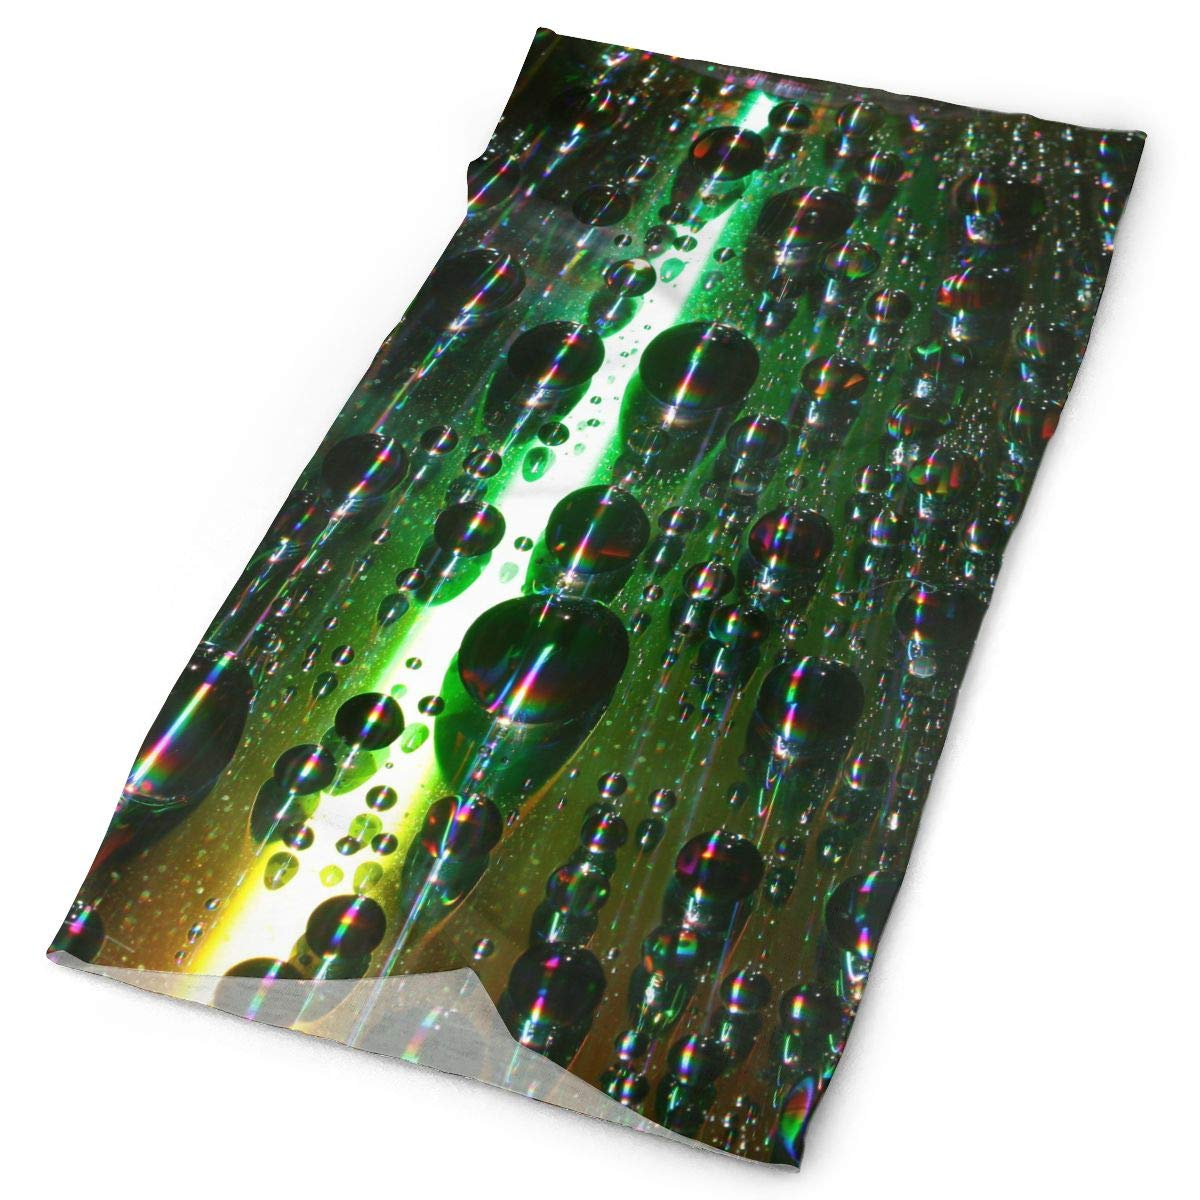 Green Bubble Iridescent Raster Unisex Fashion Quick-Drying Microfiber Headdress Outdoor Magic Scarf Neck Neck Scarf Hooded Scarf Super Soft Handle